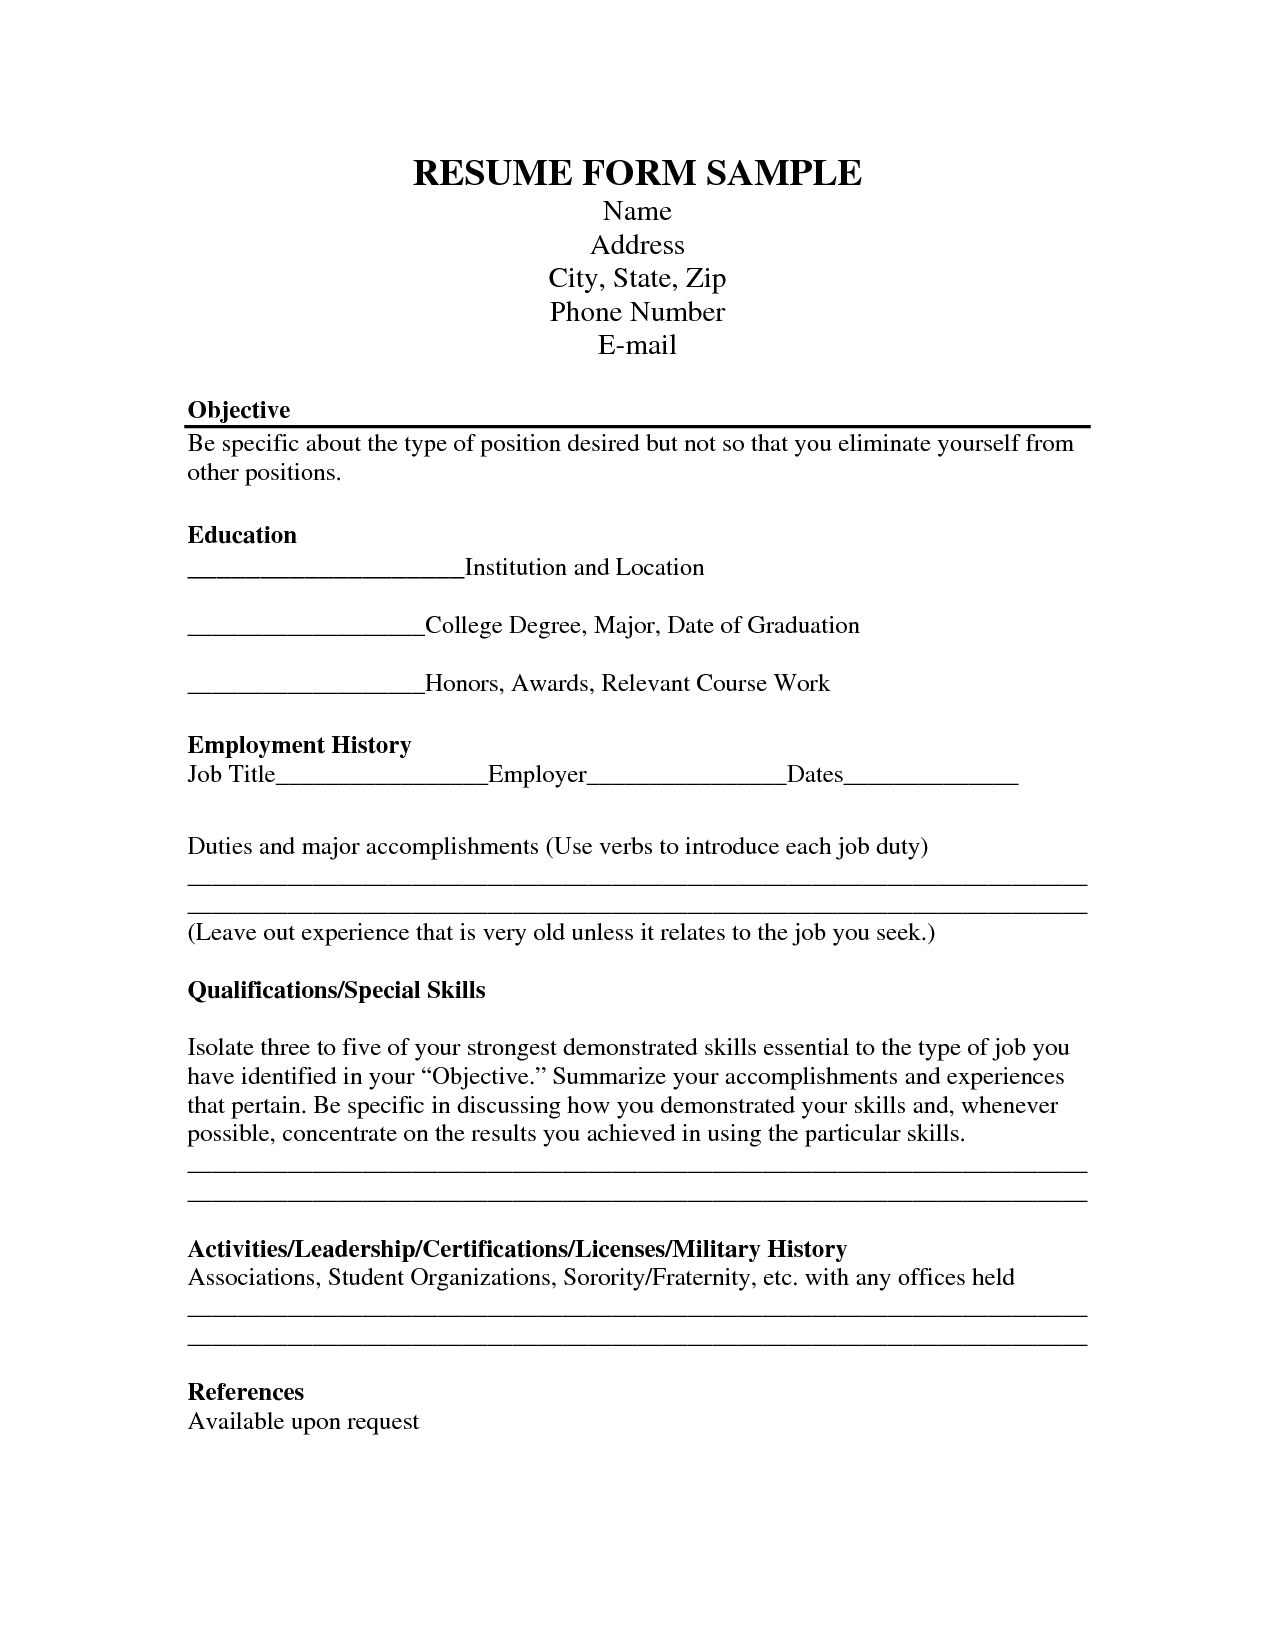 Career Resume Format - http://www.jobresume.website/career-resume ...